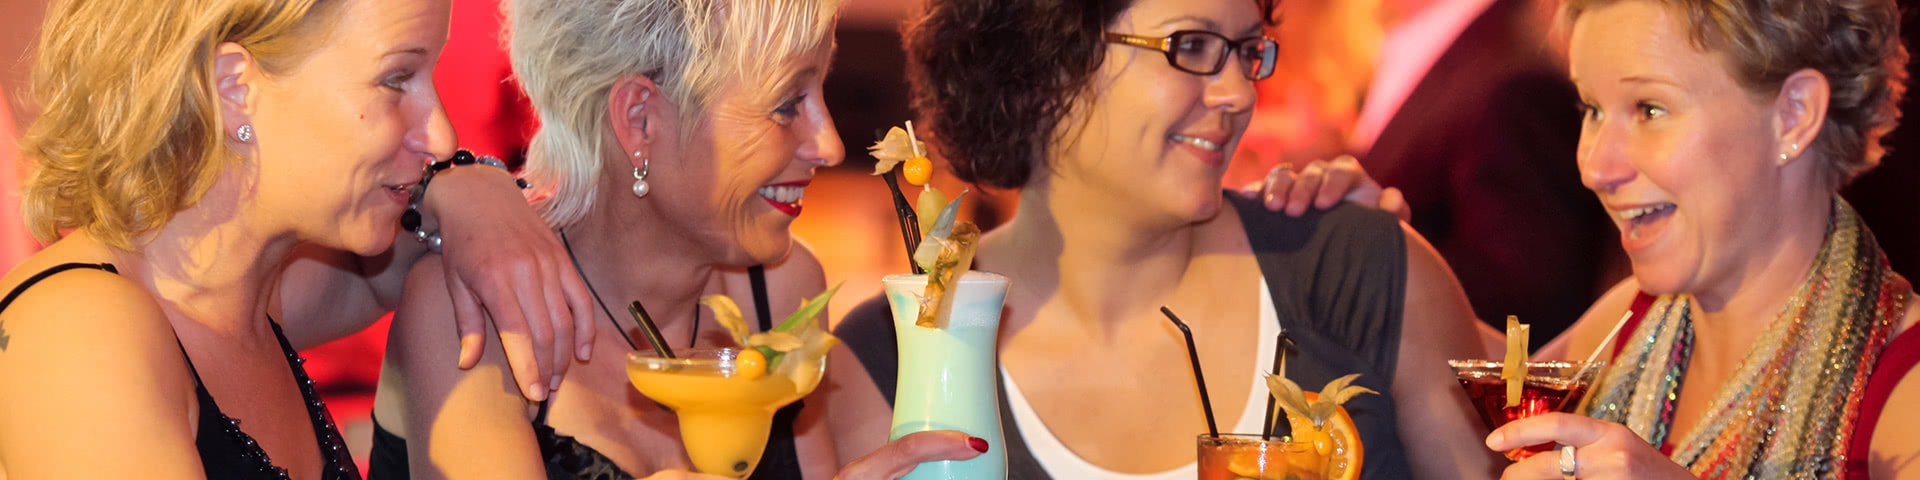 Frauengruppe trinkt Cocktails in Timmendorf